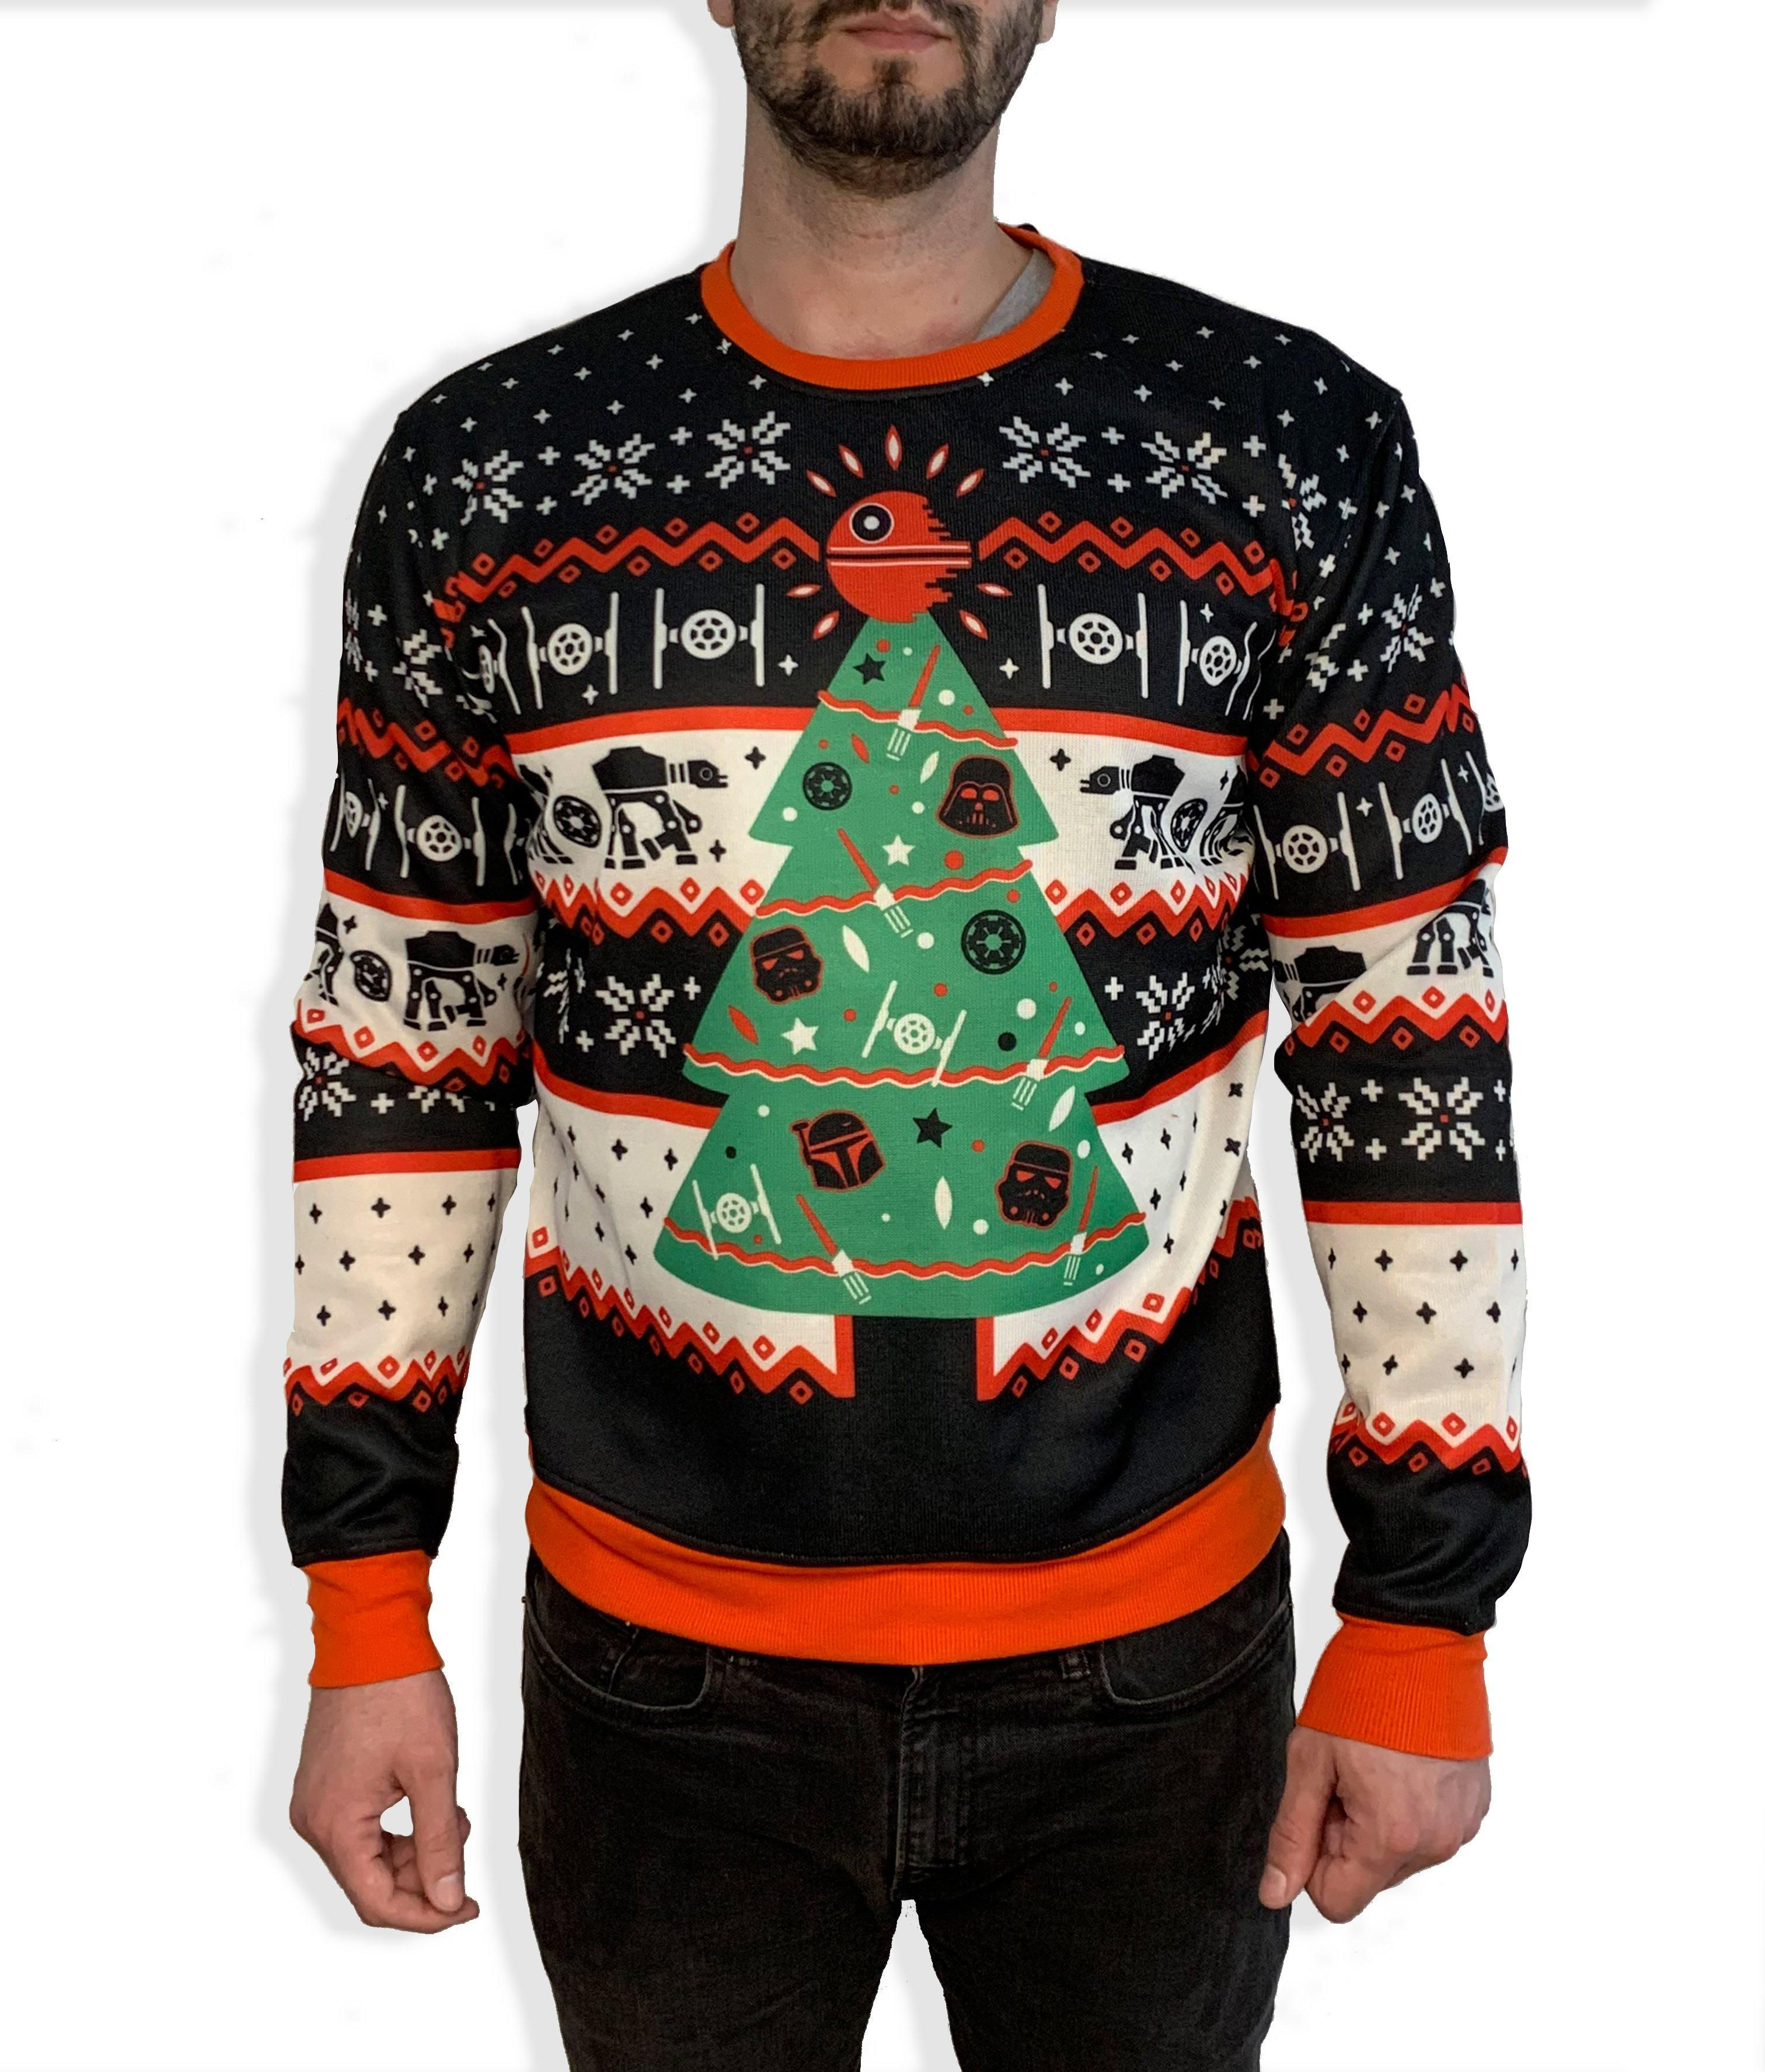 Star Wars Holiday Sweater Holiday sweater, Men sweater